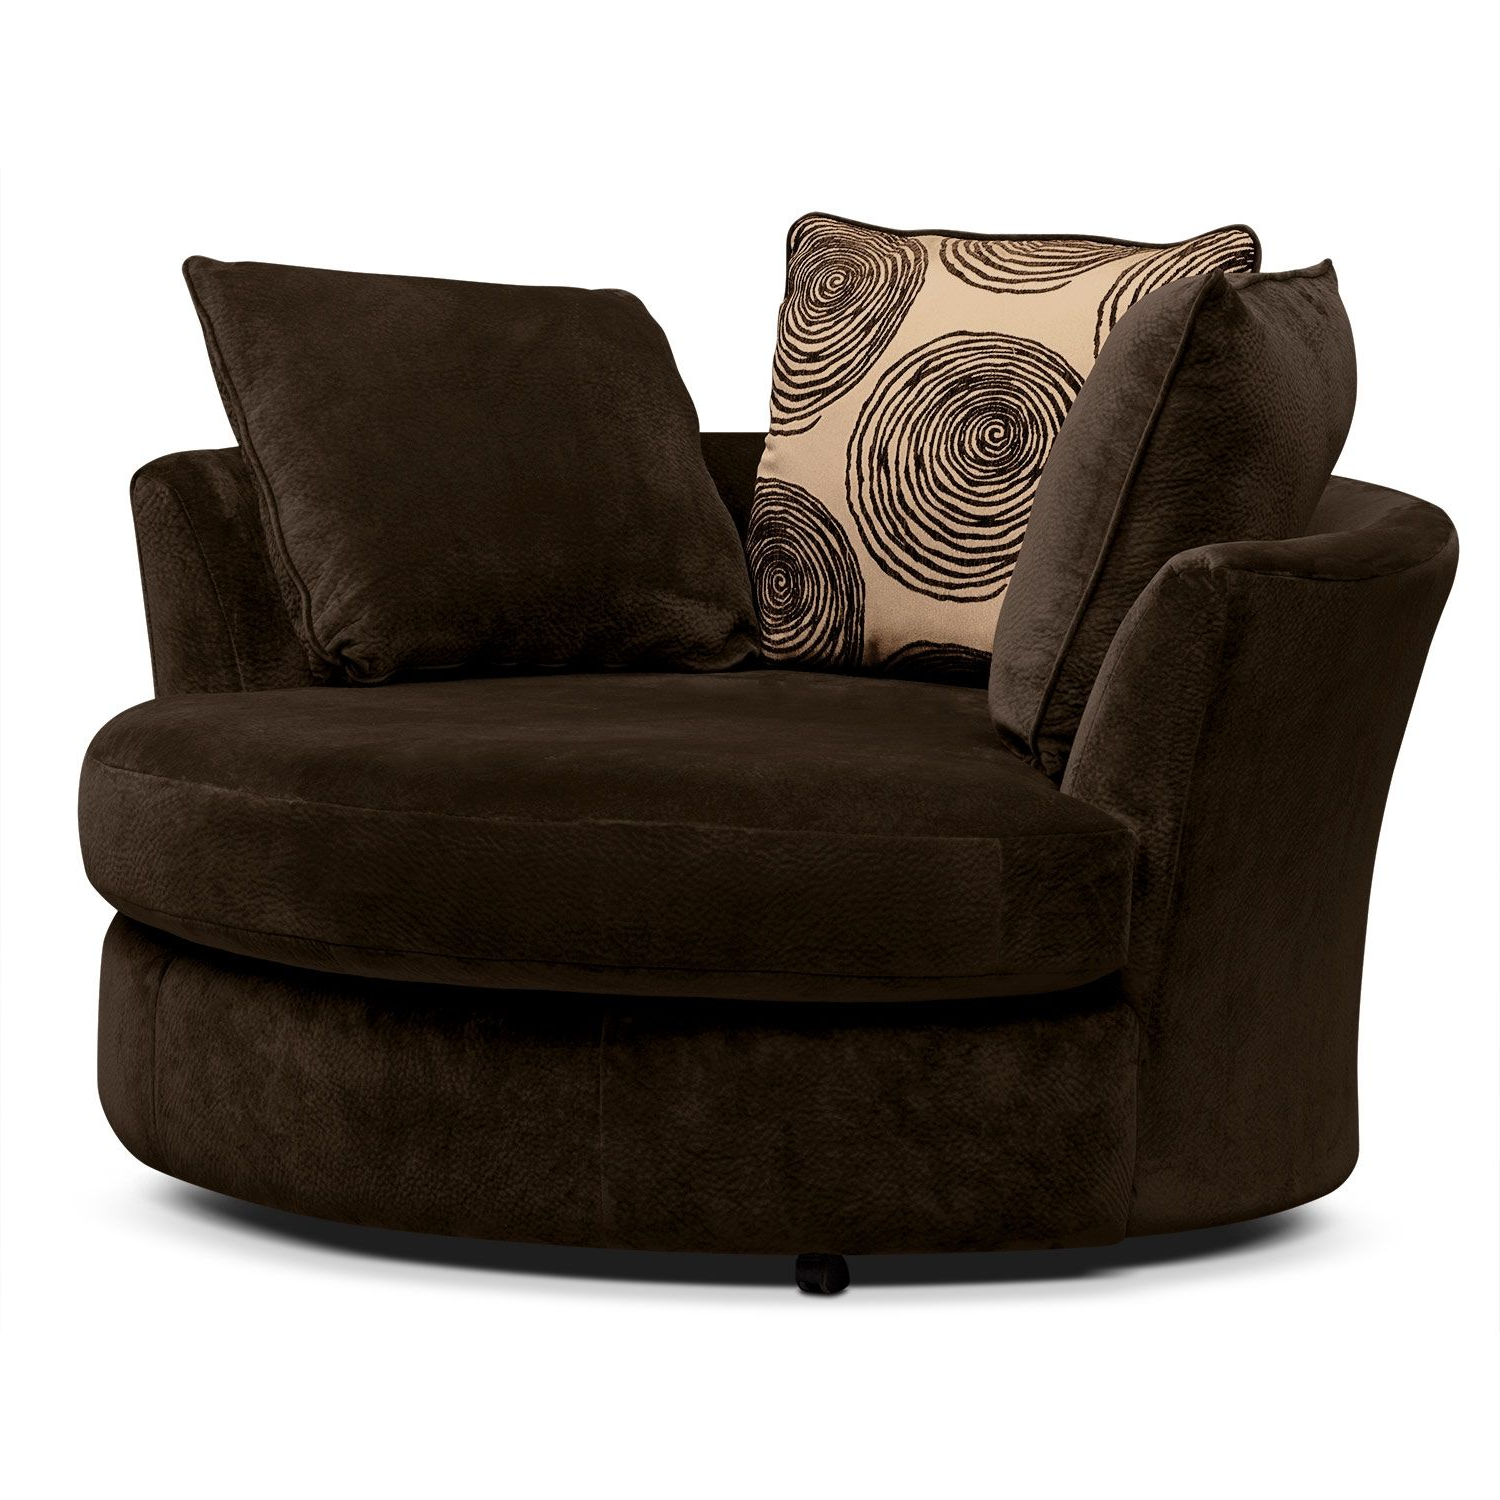 Home Decor With 2019 Chocolate Brown Leather Tufted Swivel Chairs (View 20 of 20)